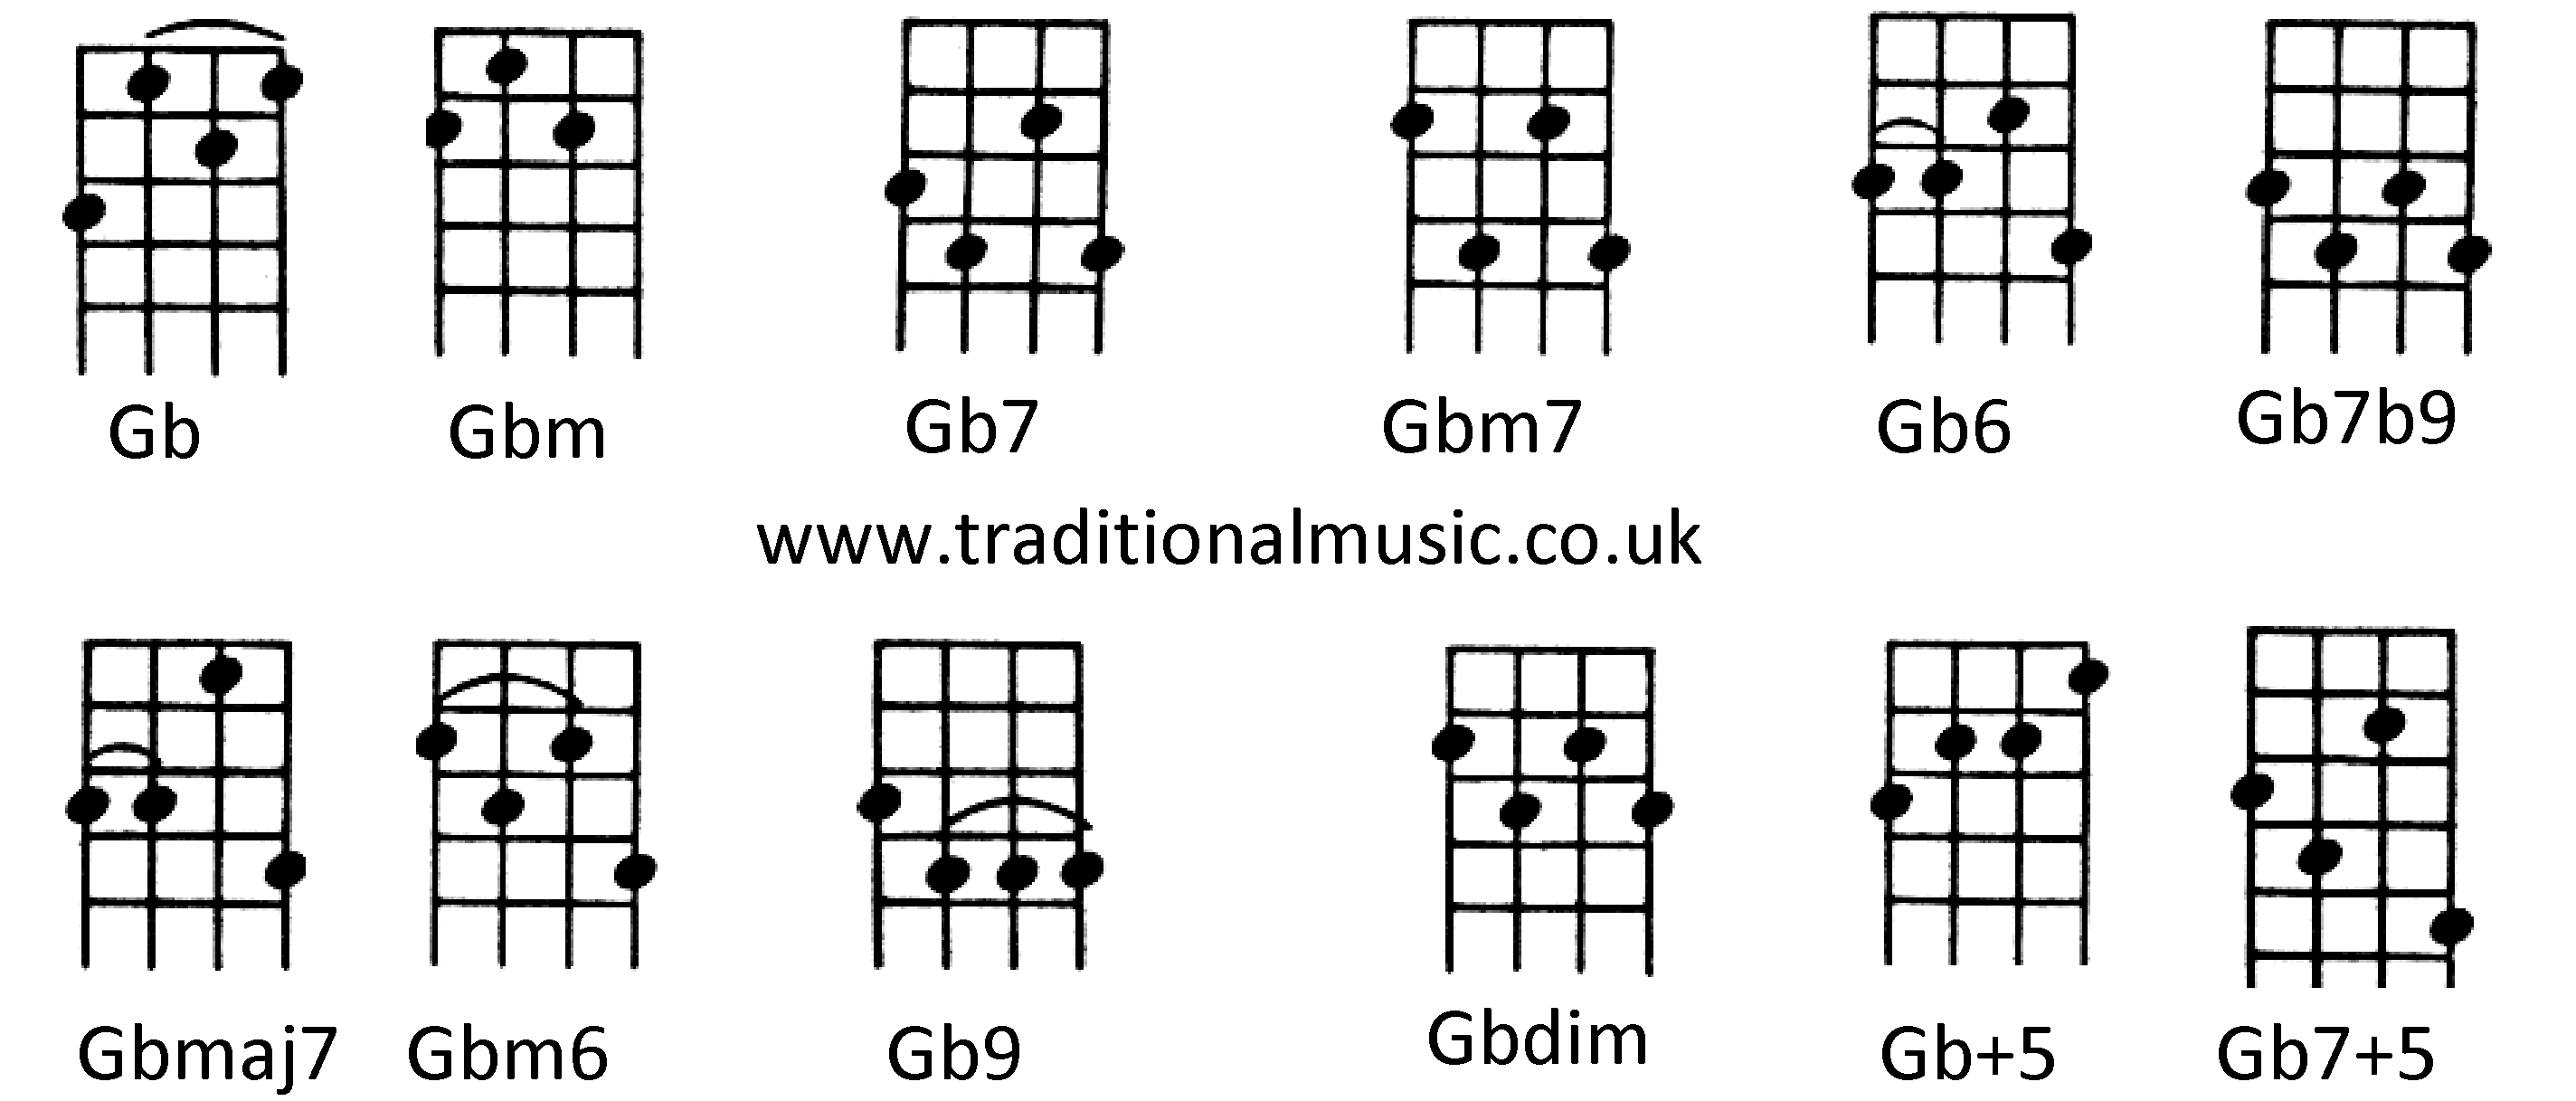 For ukulele c tuninggb gbm gb7 gbm7 gb6 gb7b9 gbmaj7 gbm6 gb9 chords for ukulele c tuninggb gbm gb7 gbm7 gb6 gb7b9 gbmaj7 gbm6 gb9 gbdim hexwebz Choice Image